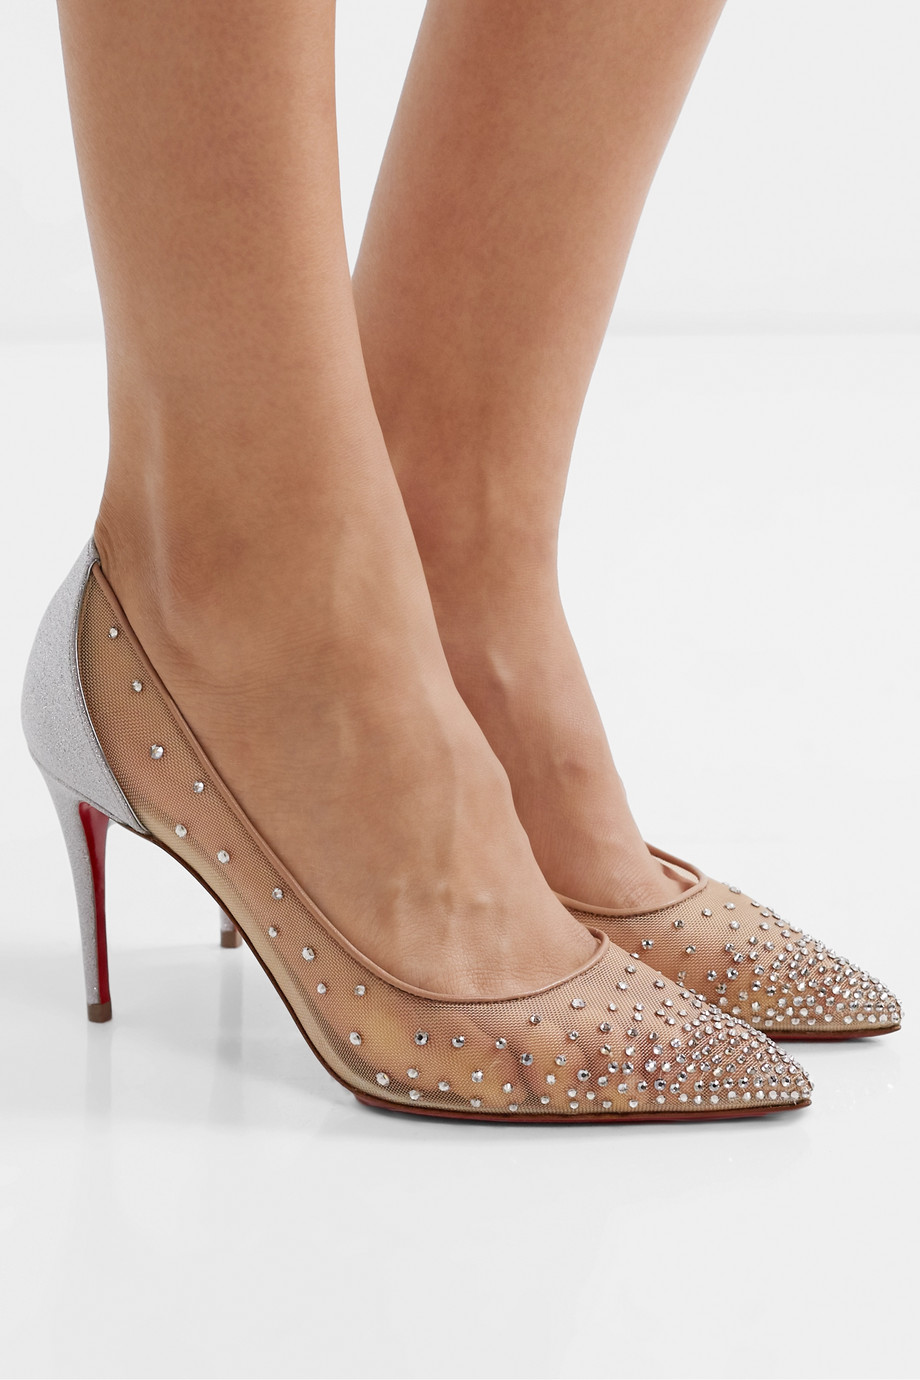 Christian Louboutin Follies 85 crystal-embellished mesh and glittered-leather pumps